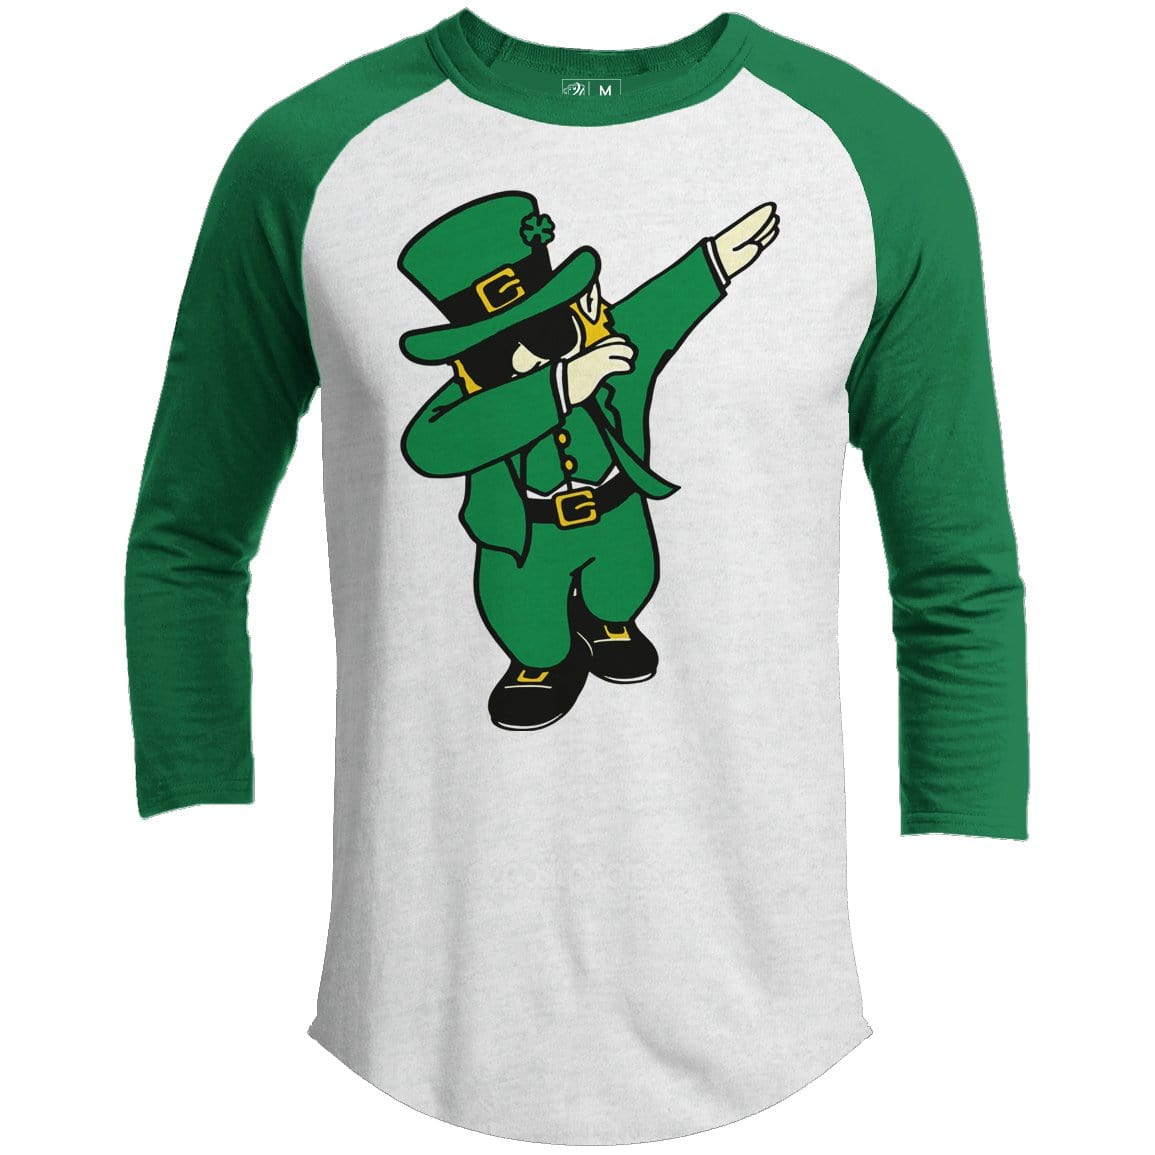 Leprechaun Dab Premium Youth St. Patrick's Day Raglan